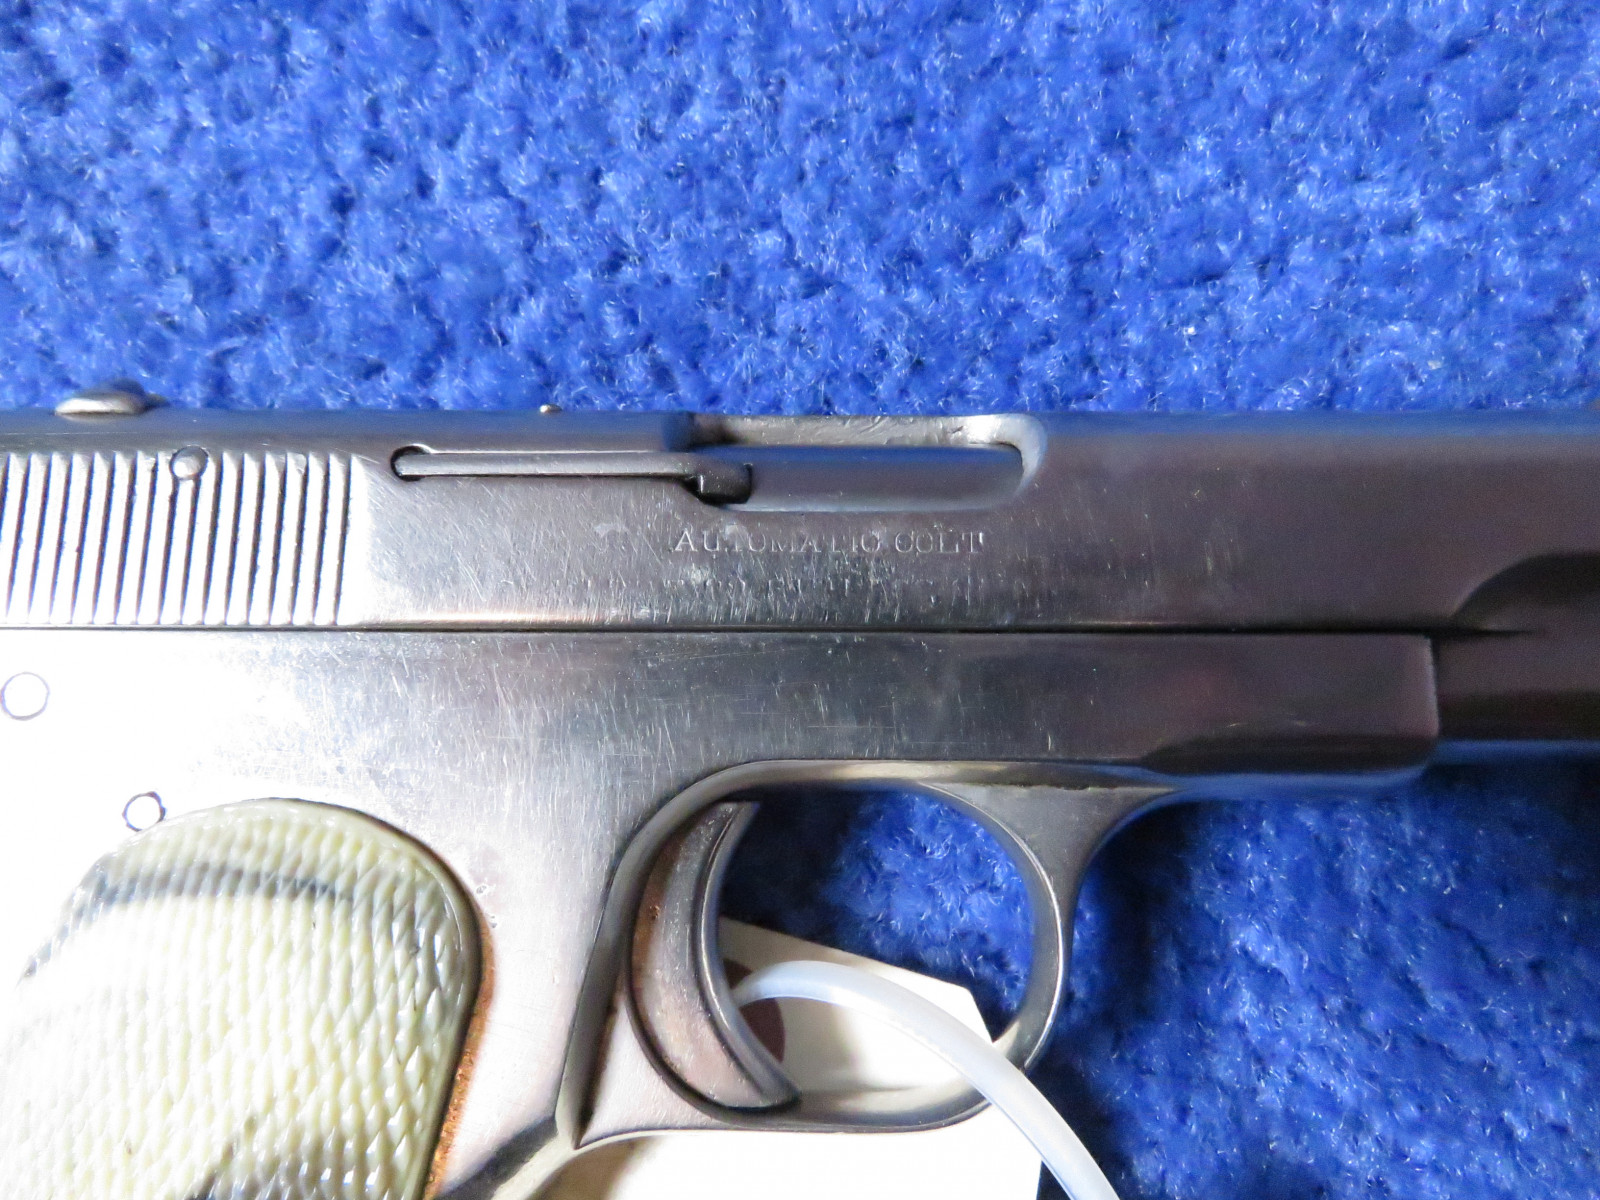 Colt Pocket Positive .32 Cal Semi-Auto Handgun - Image 4